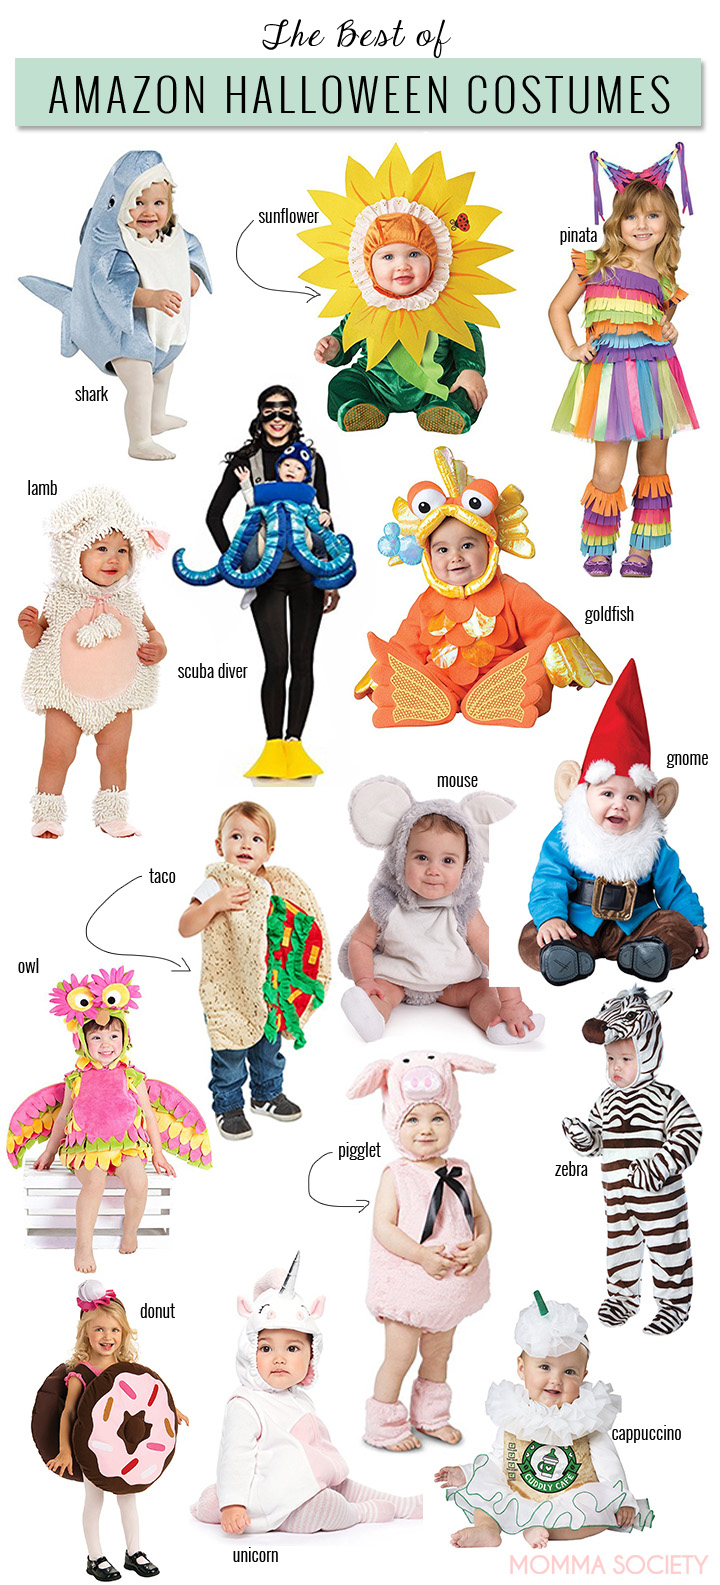 d6ef2b8edcb1 I Searched 1500 Baby   Toddler Costumes on Amazon   These Are My ...